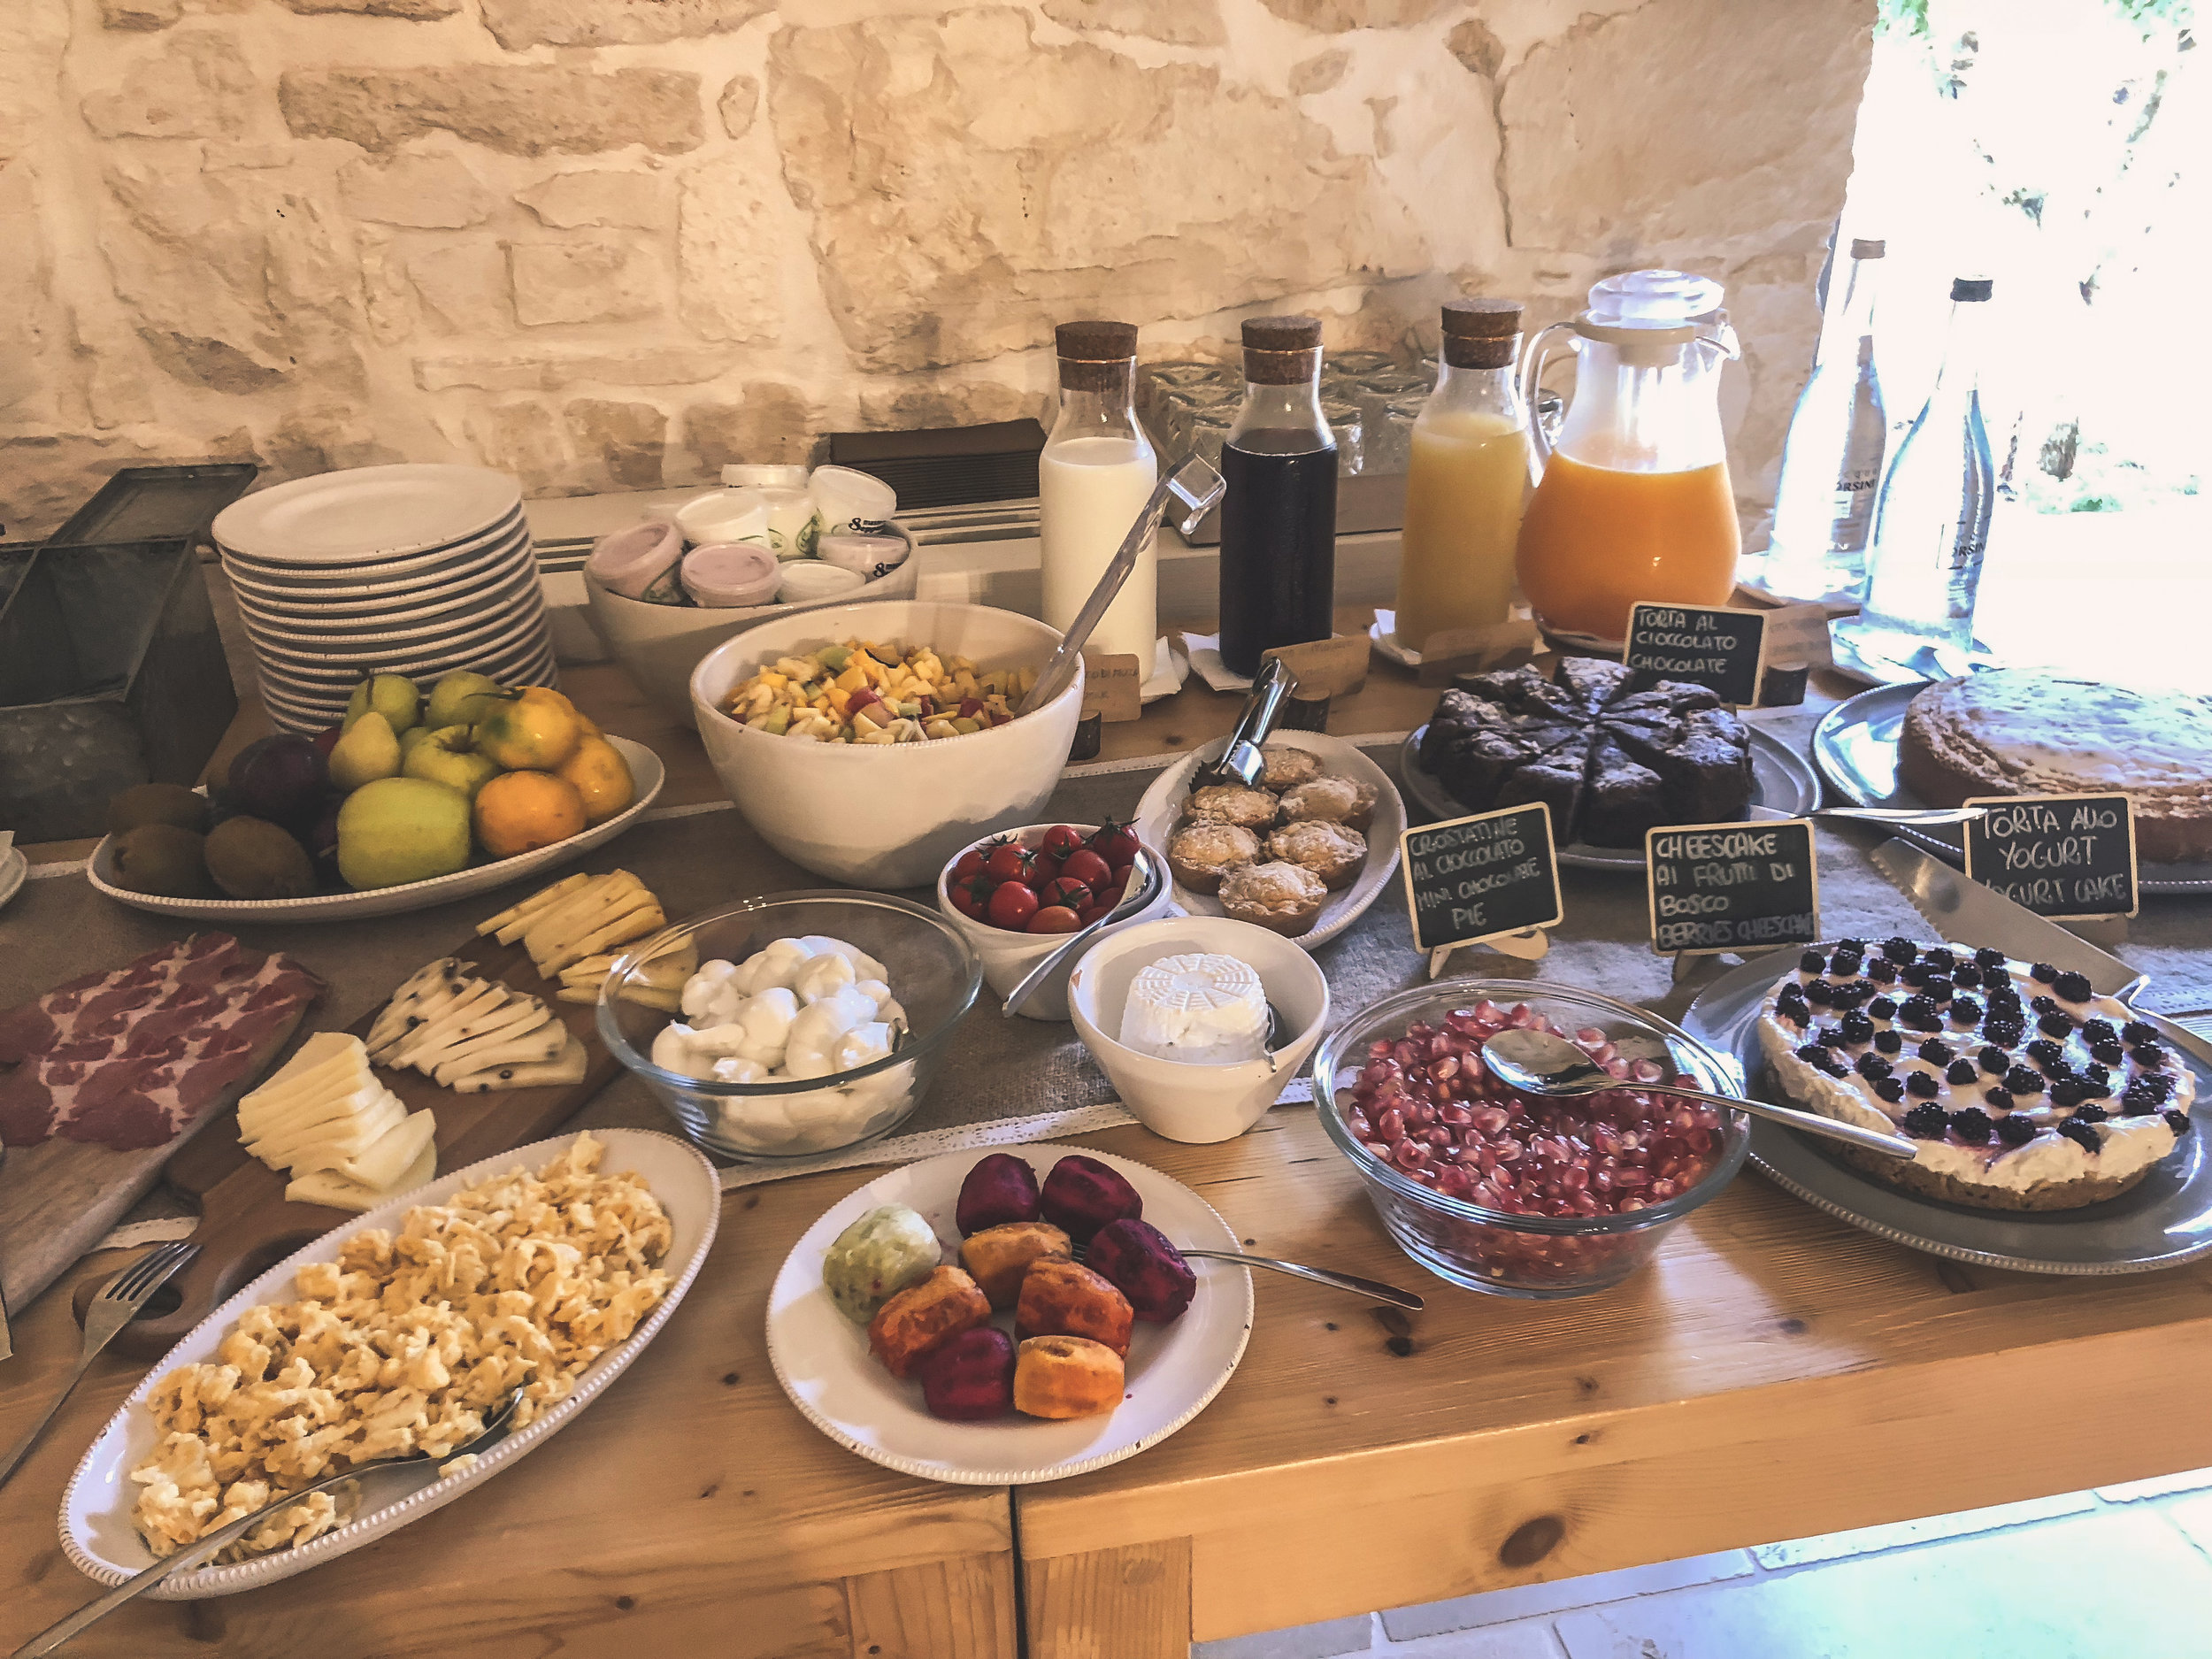 breakfast at masseria grieco, puglia. SO MUCH GOODNESS!